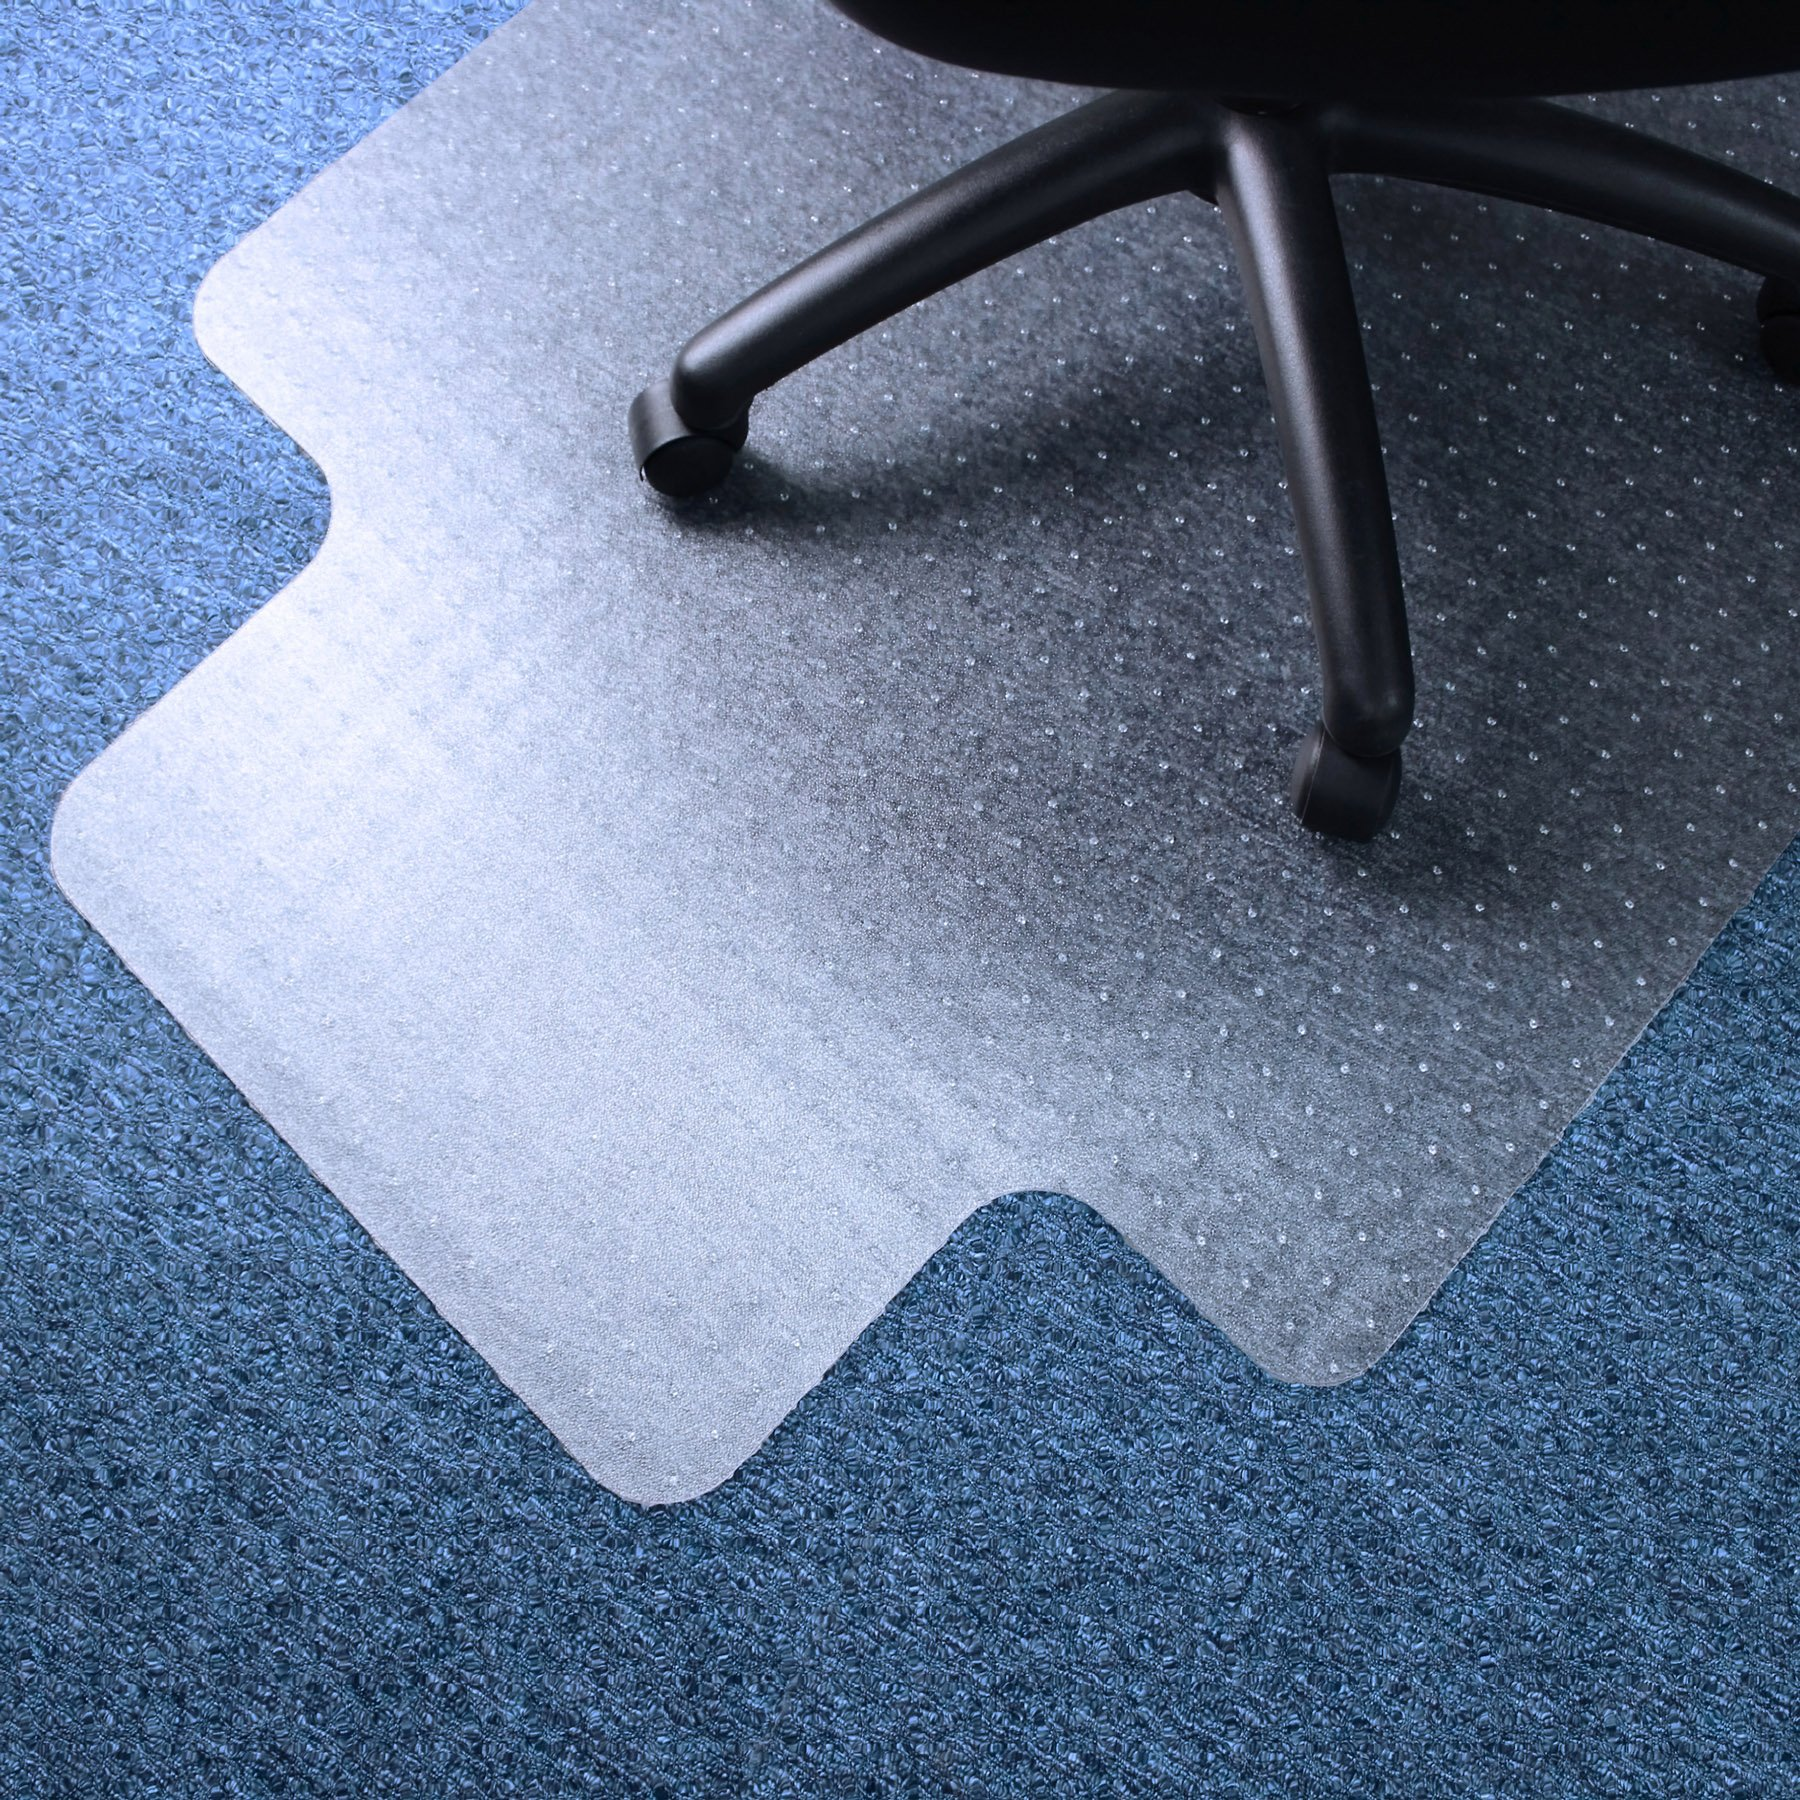 Marvelux 36'' x 48'' Vinyl (PVC) Lipped Chair Mat for Very Low Pile Carpets | Transparent Carpet Protector | Pack of 2